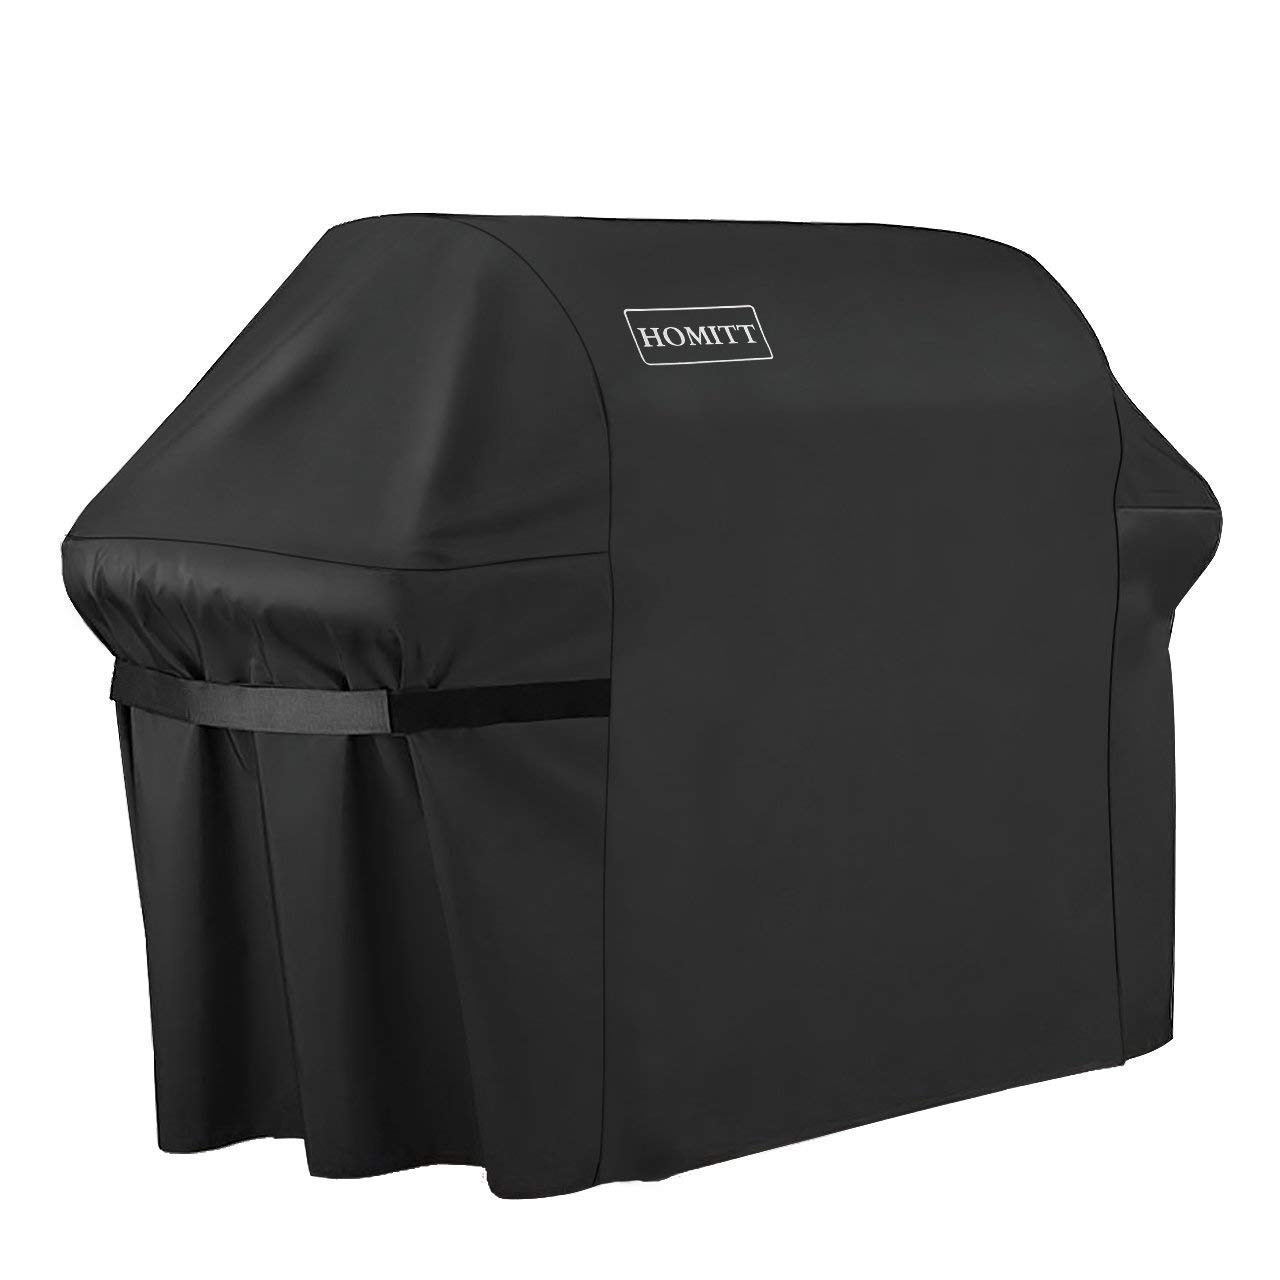 Homitt Gas Grill Cover, 64-inch 600D Heavy Duty Waterproof BBQ Cover with Handles and Straps for Most Brands of Grill -Black by Homitt